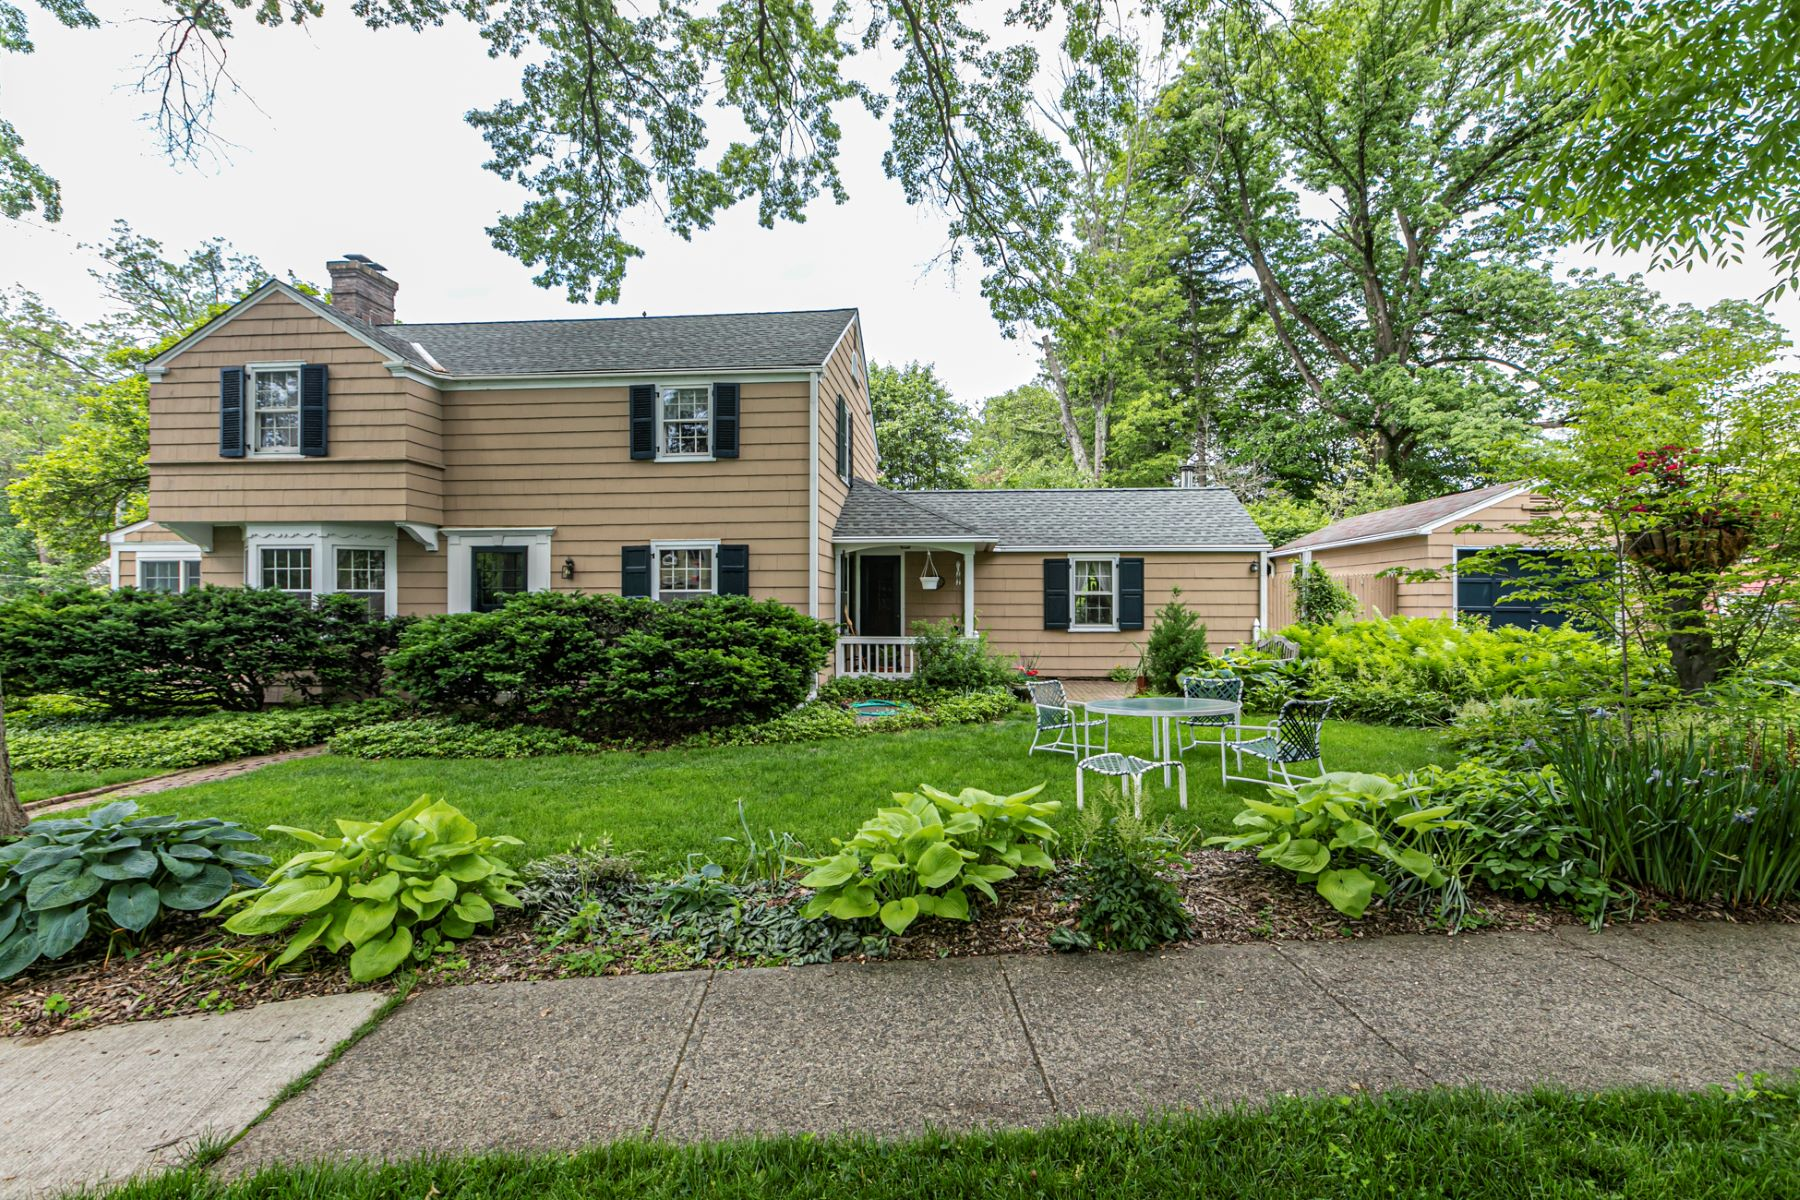 Single Family Homes for Sale at Organic Gardens Enhance this Cottage-Style Charmer 144 Patton Avenue, Princeton, New Jersey 08540 United States